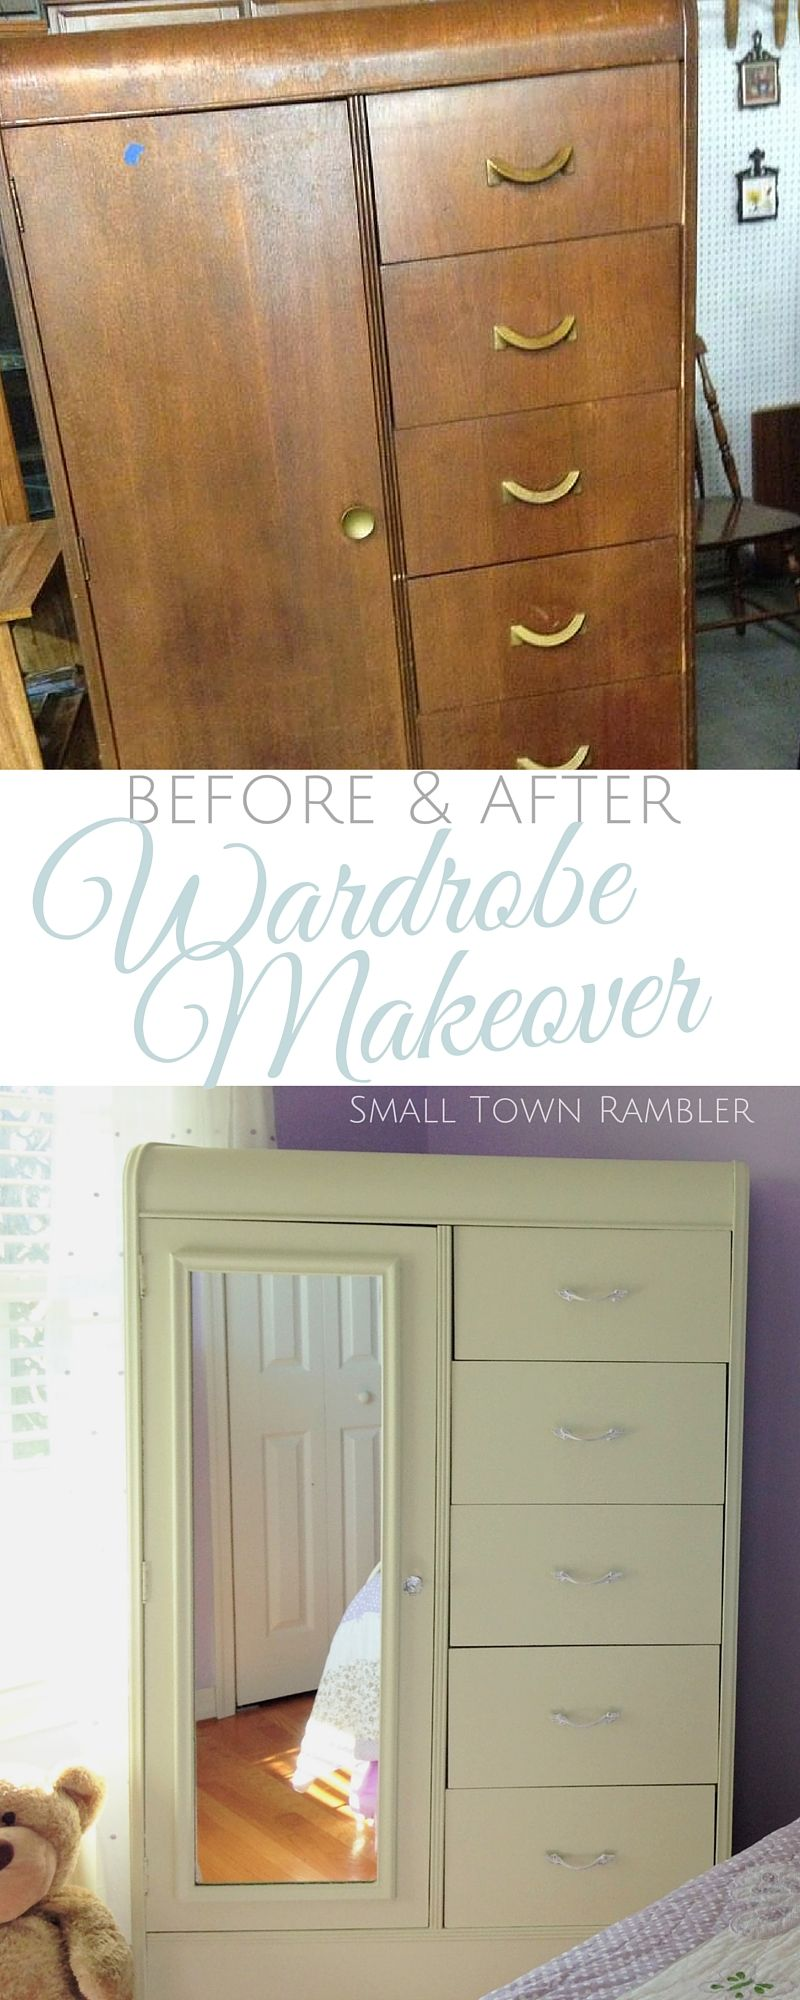 Painted furniture ideas before and after - Girl S Chifferobe Makeover Before And After